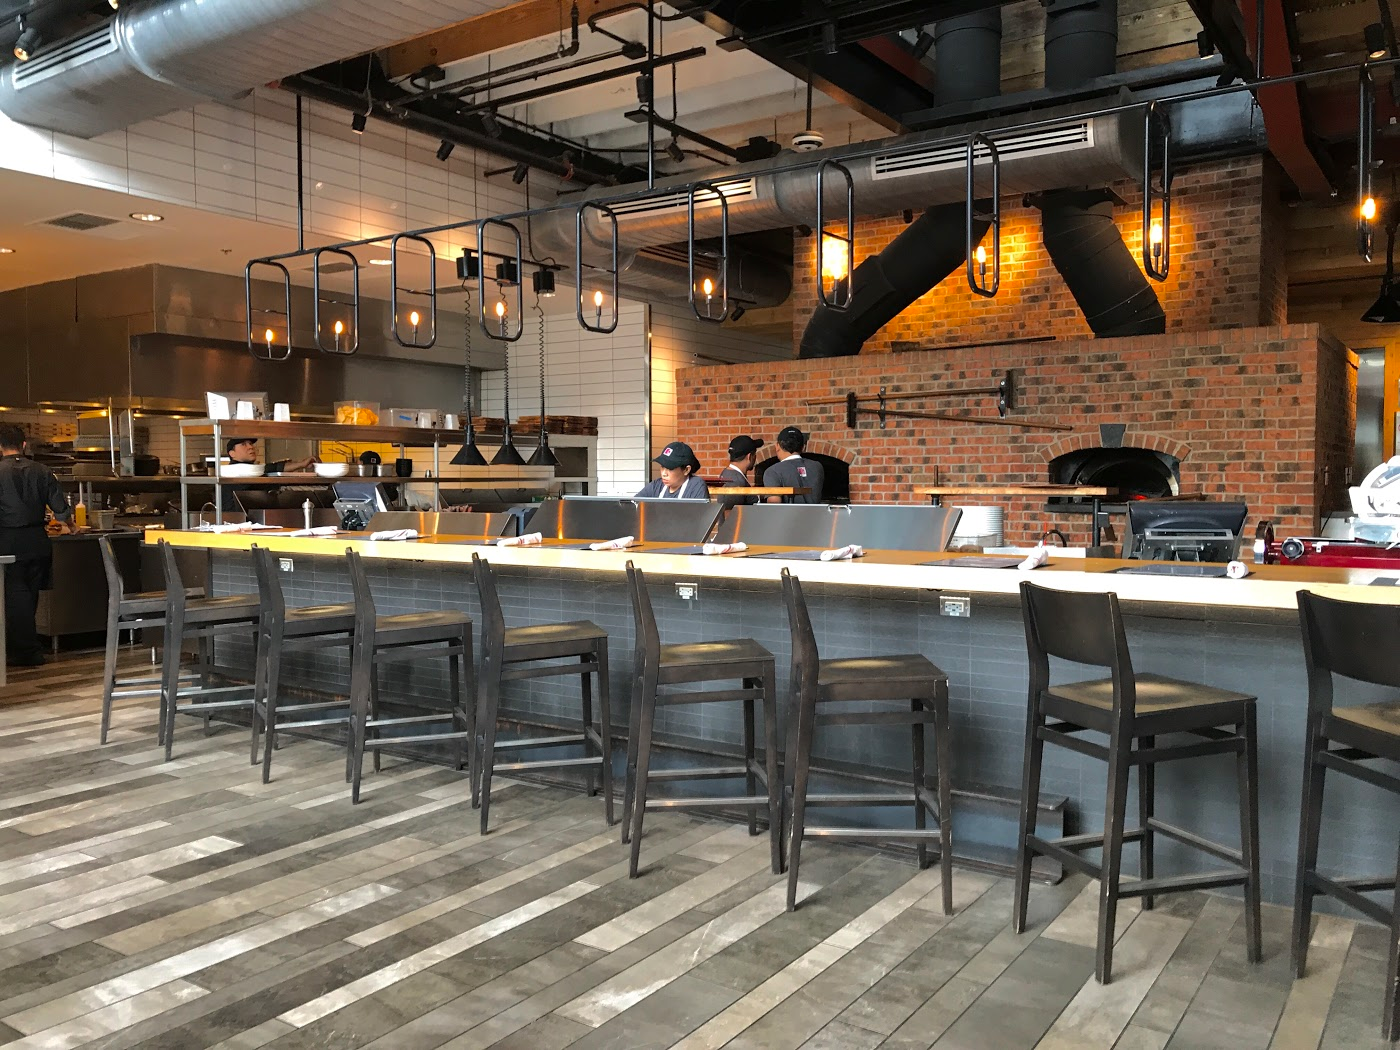 Matchbox | 44720 Thorndike Street The Bistro Menu Starts With Innovative  Recipes Developed By Talented Chefs, Which Are Constructed With Fresh  Ingredients ...